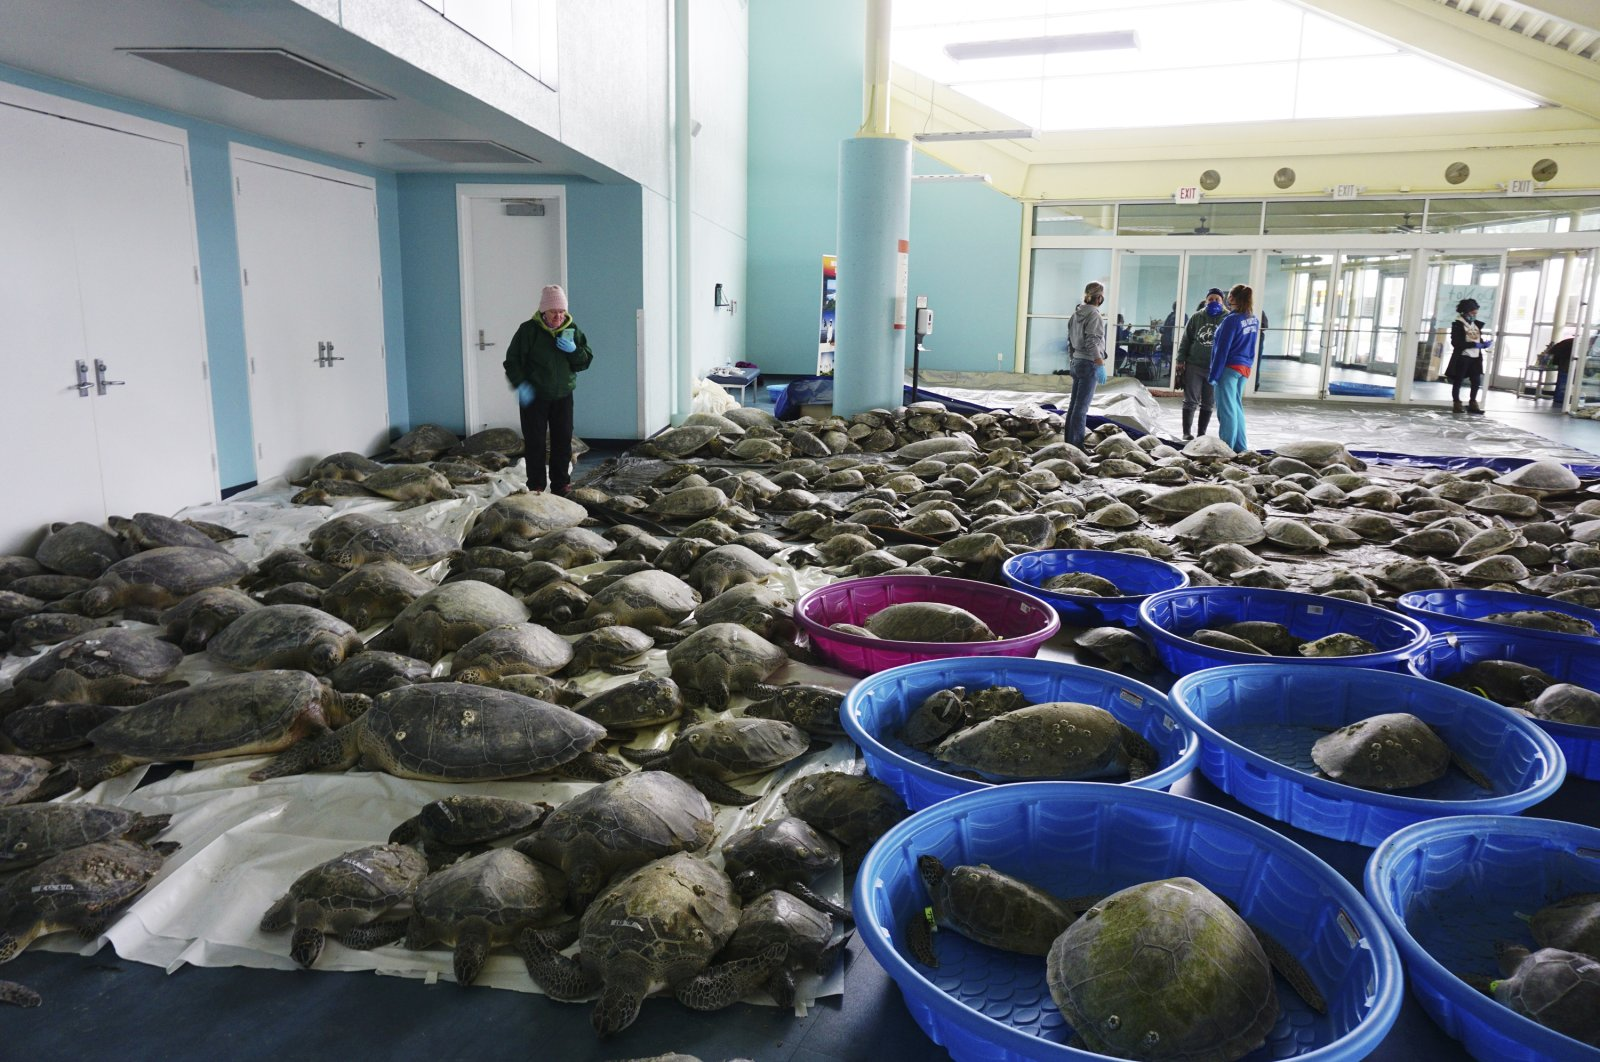 Thousands of Atlantic green sea turtles and Kemp's ridley sea turtles suffering from cold stun are laid out to recover at the South Padre Island Convention Center on South Padre Island, Texas, Feb. 16, 2021. (AP Photo)